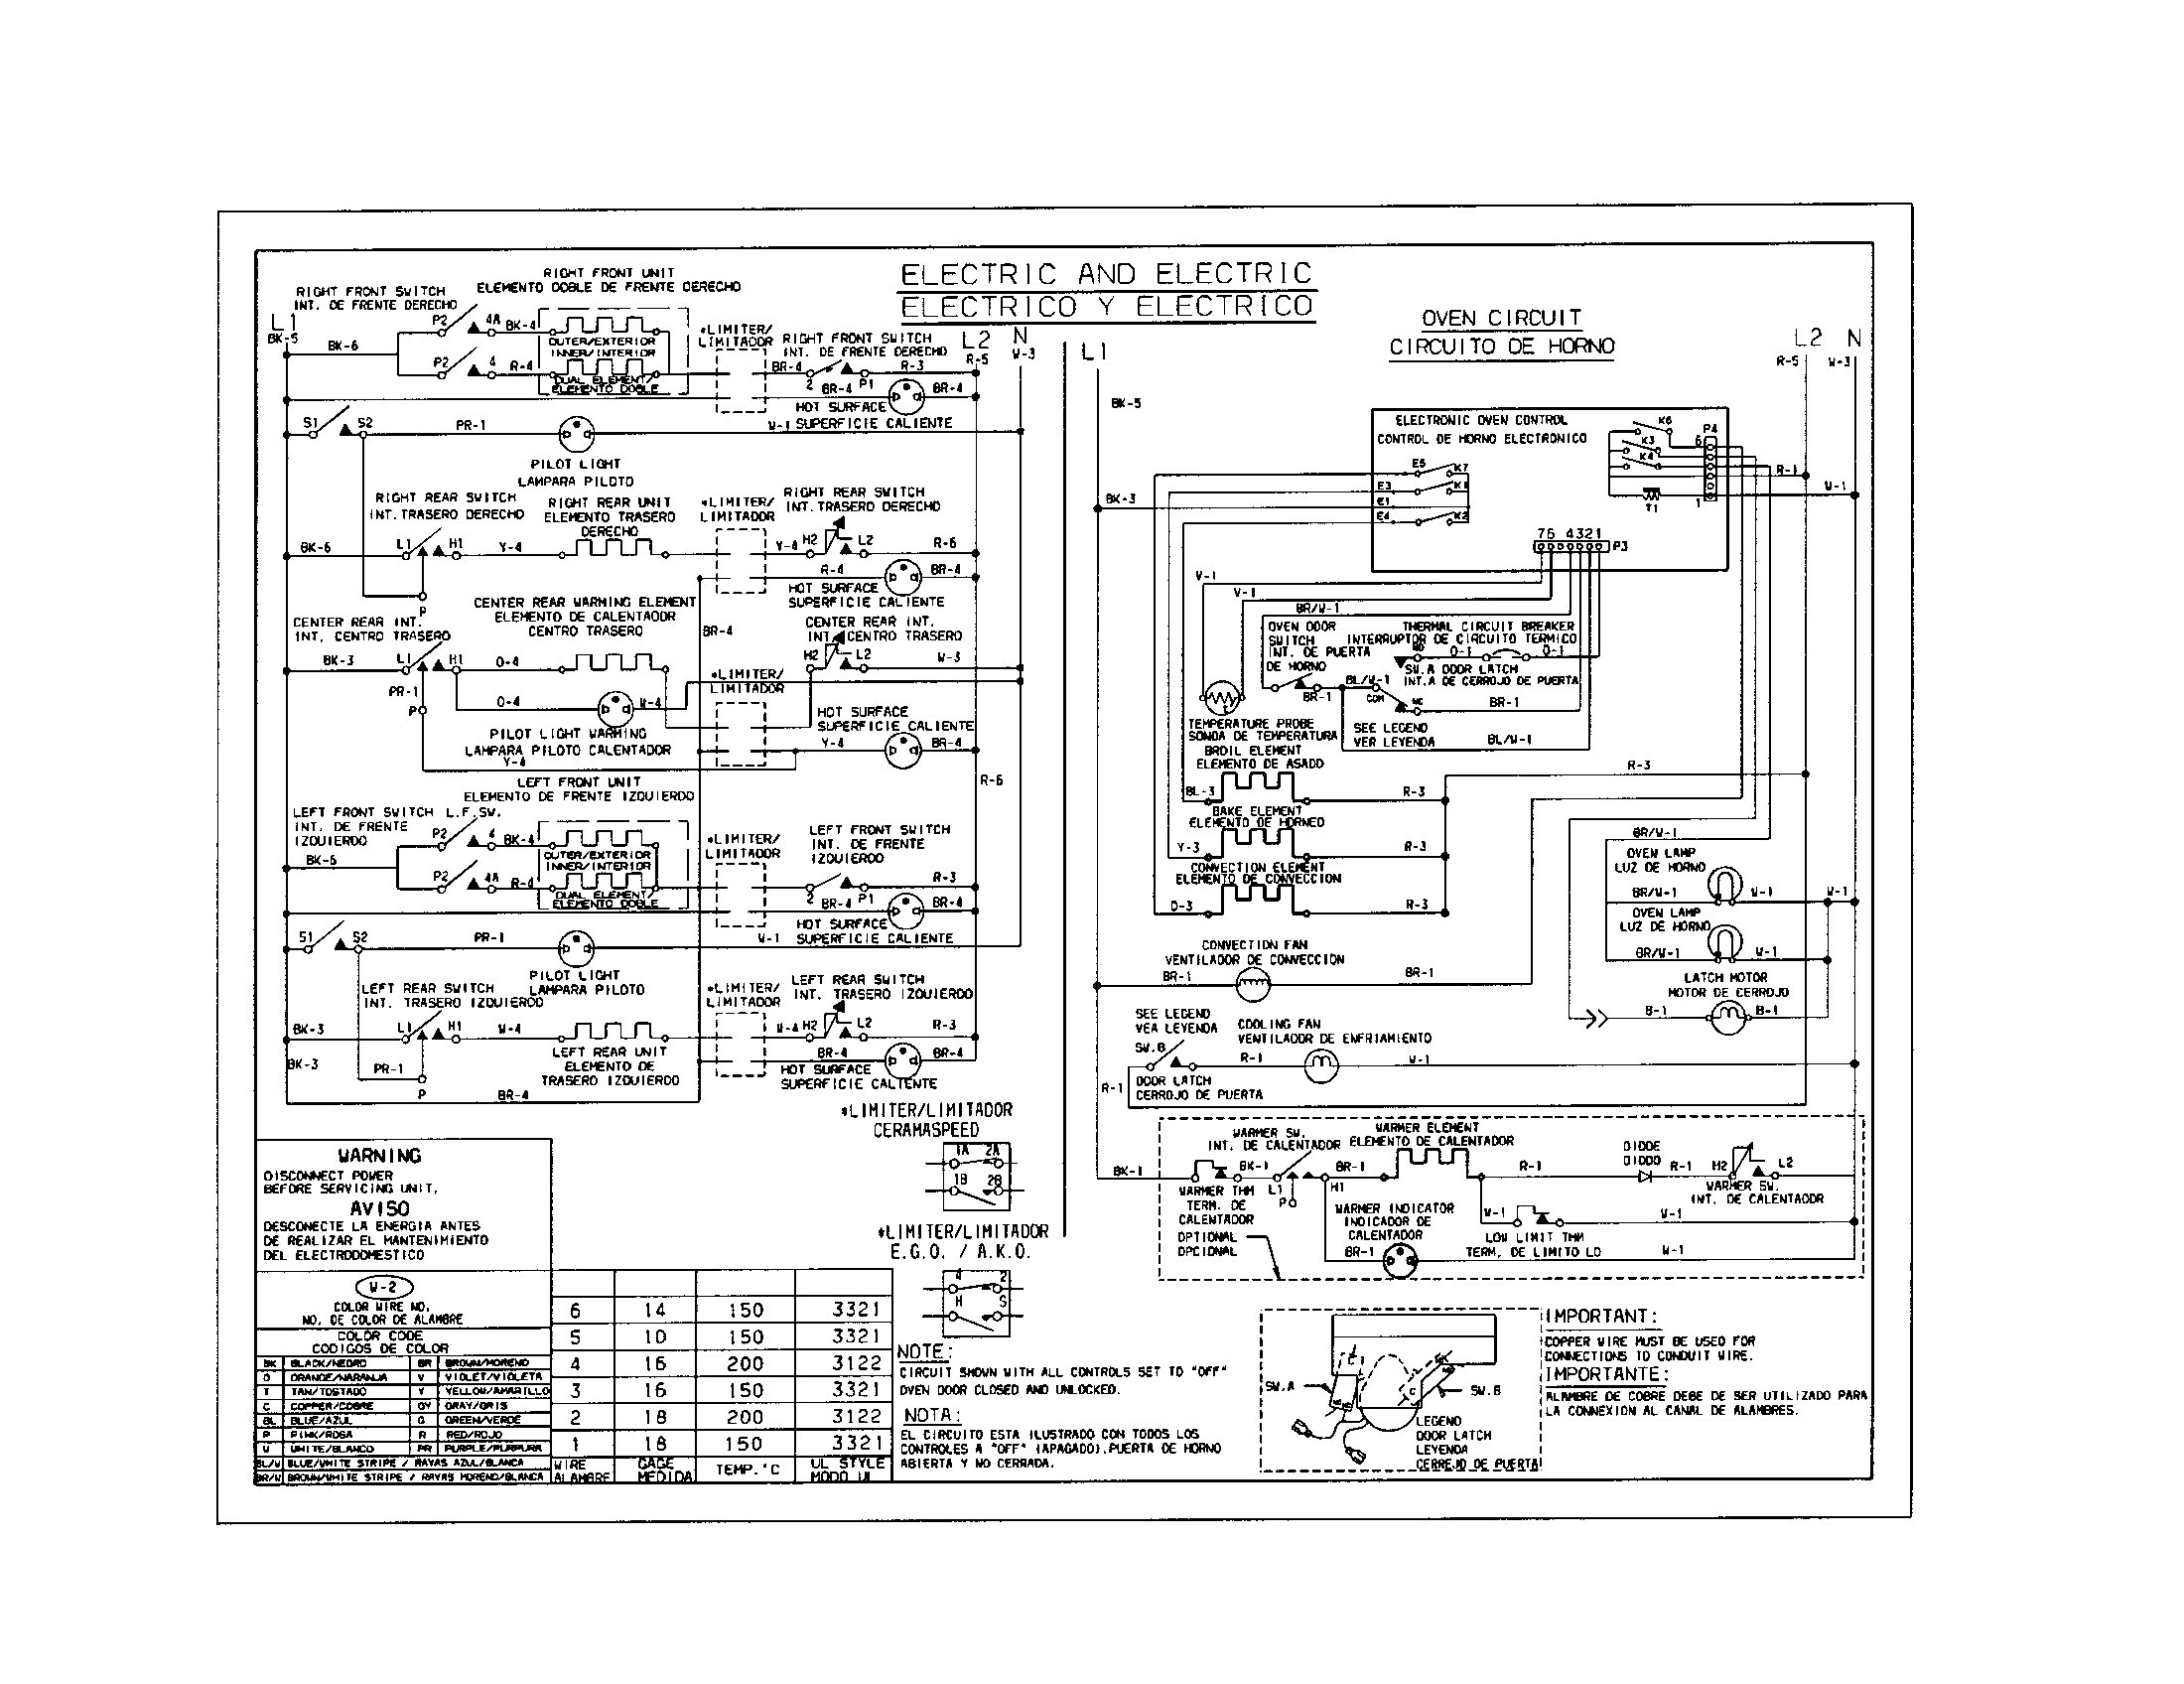 Kenmore Oven Wiring Diagram Wiring Diagram Schematics Oven Wiring Diagrams  Oven Wiring Diagram Sears